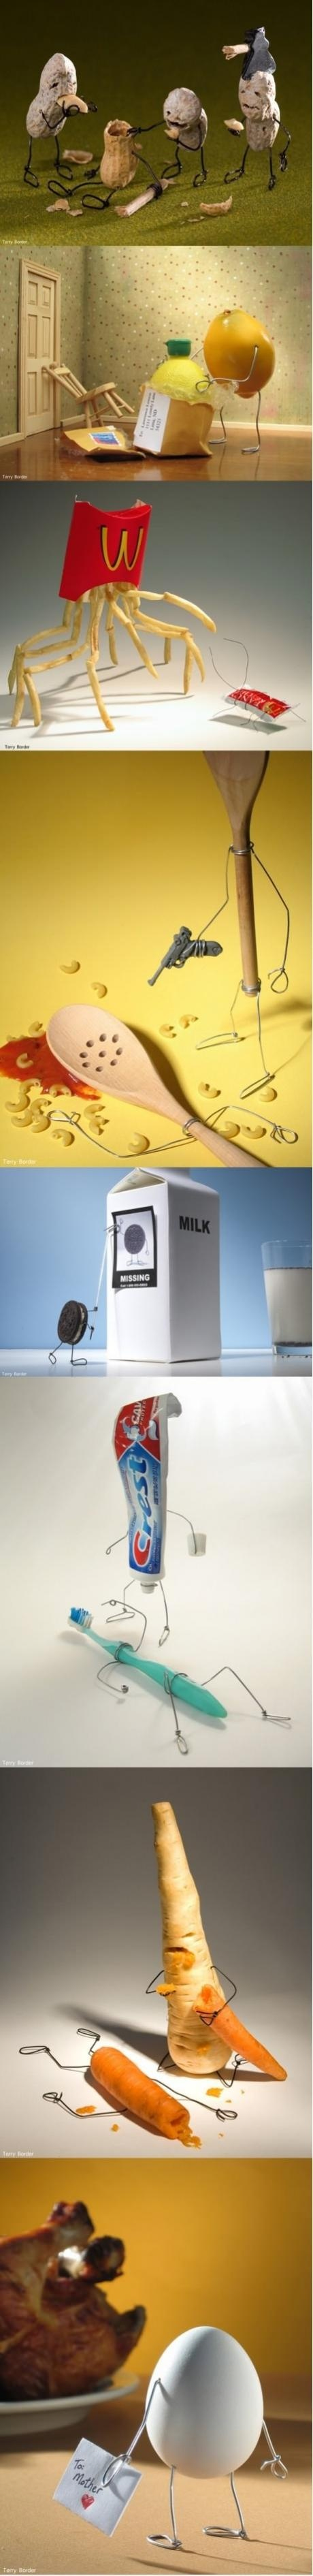 Who said don't play with your food - Win Picture